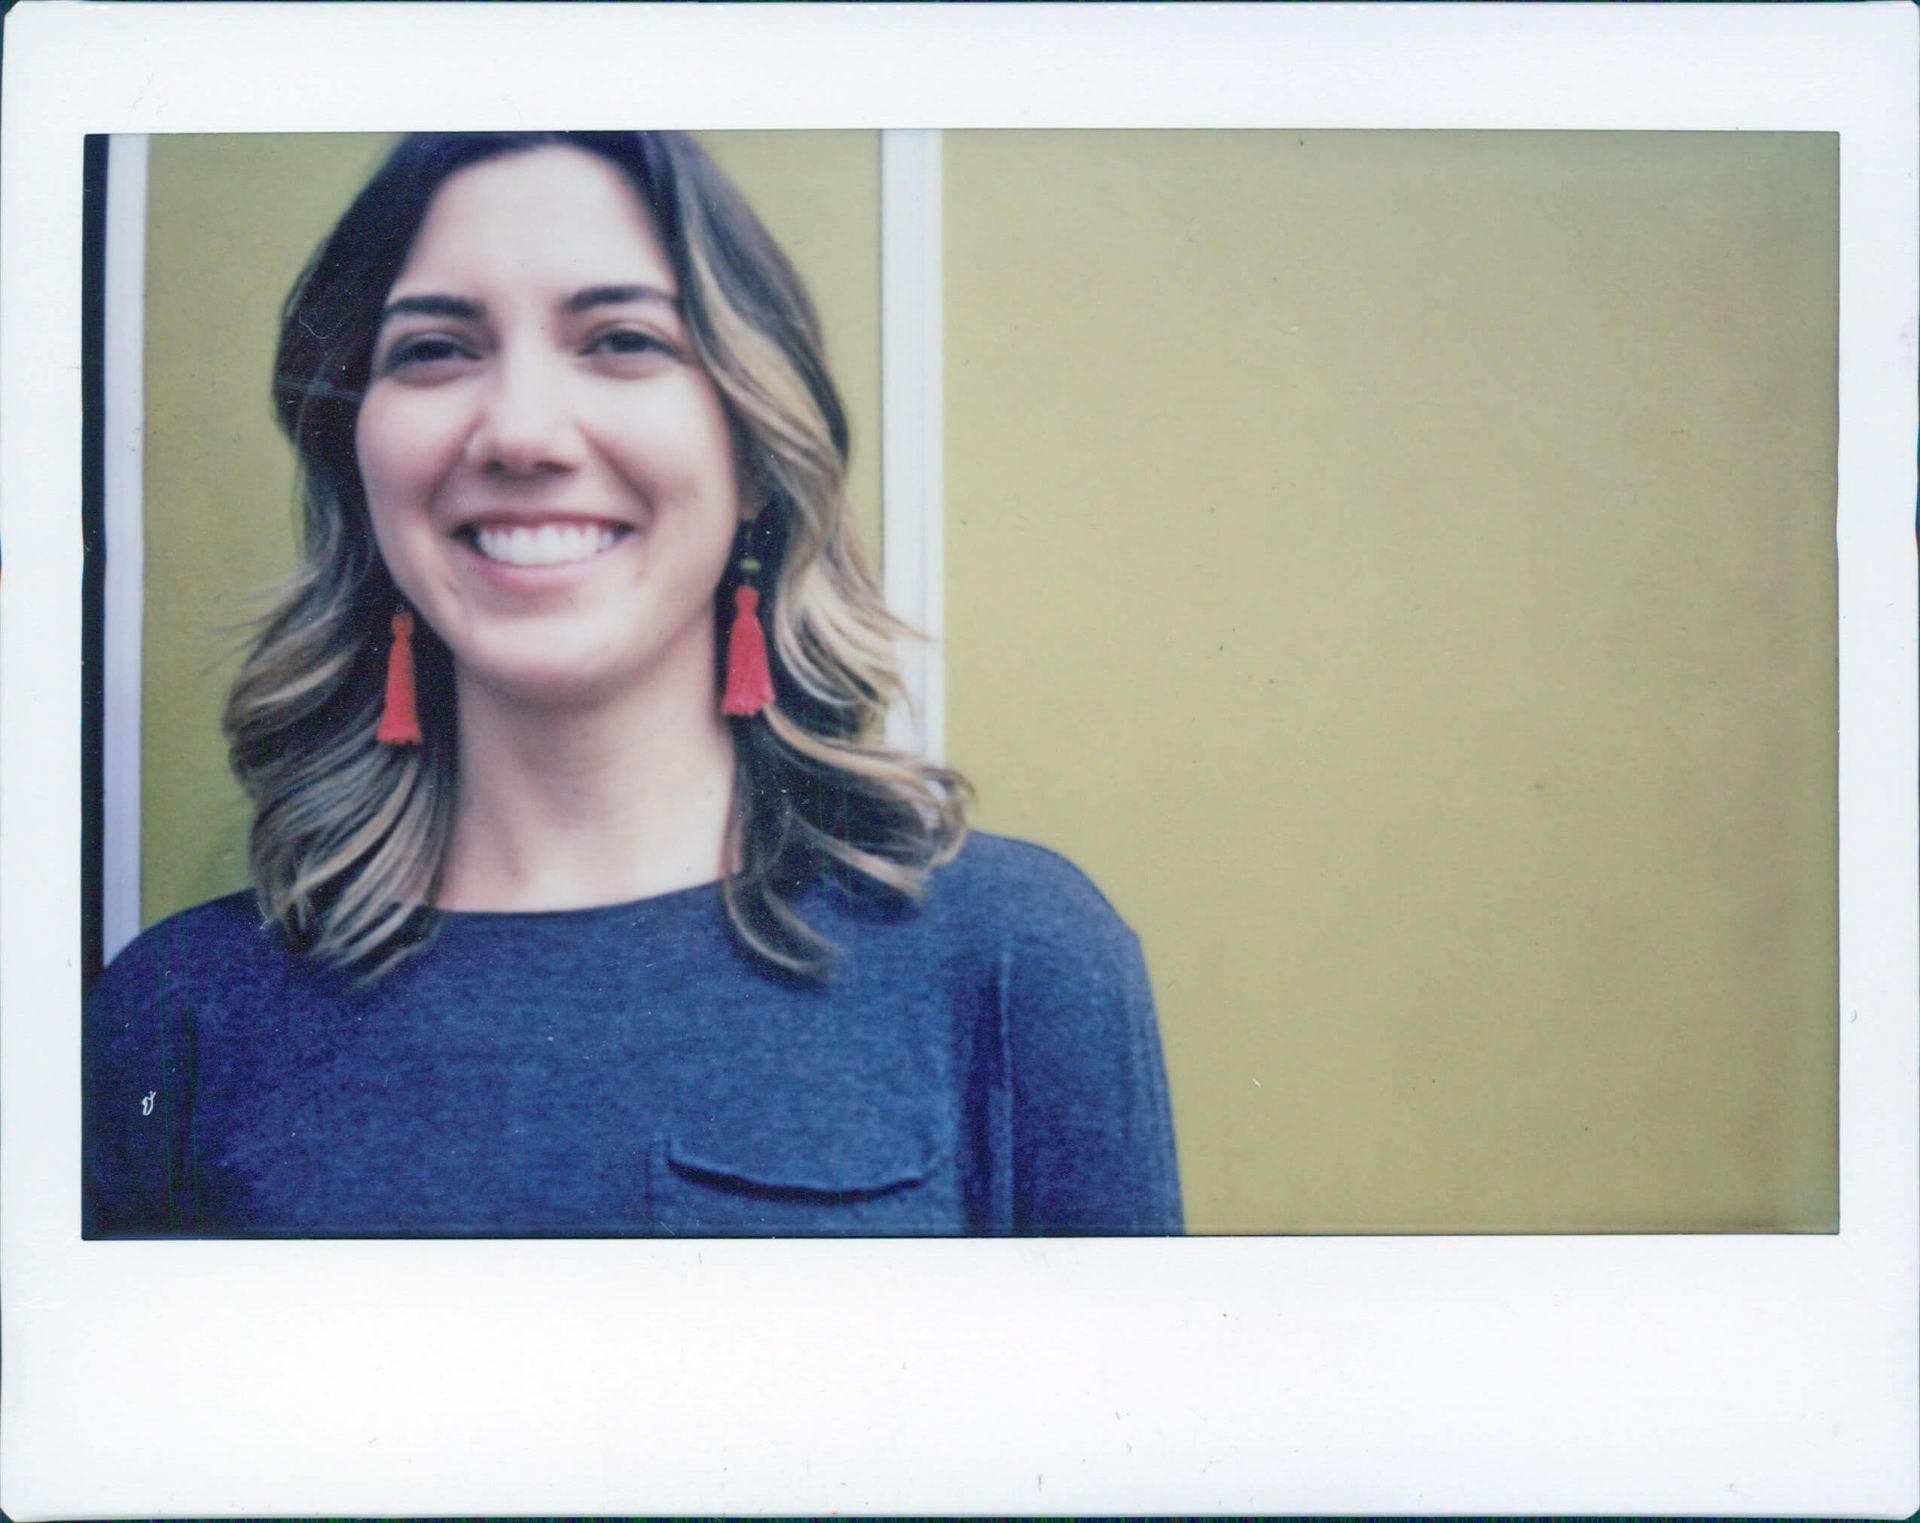 Word of Mouth: Nashville Conversations—Brittany Murphy, Graphic Designer & Arts Enthusiast